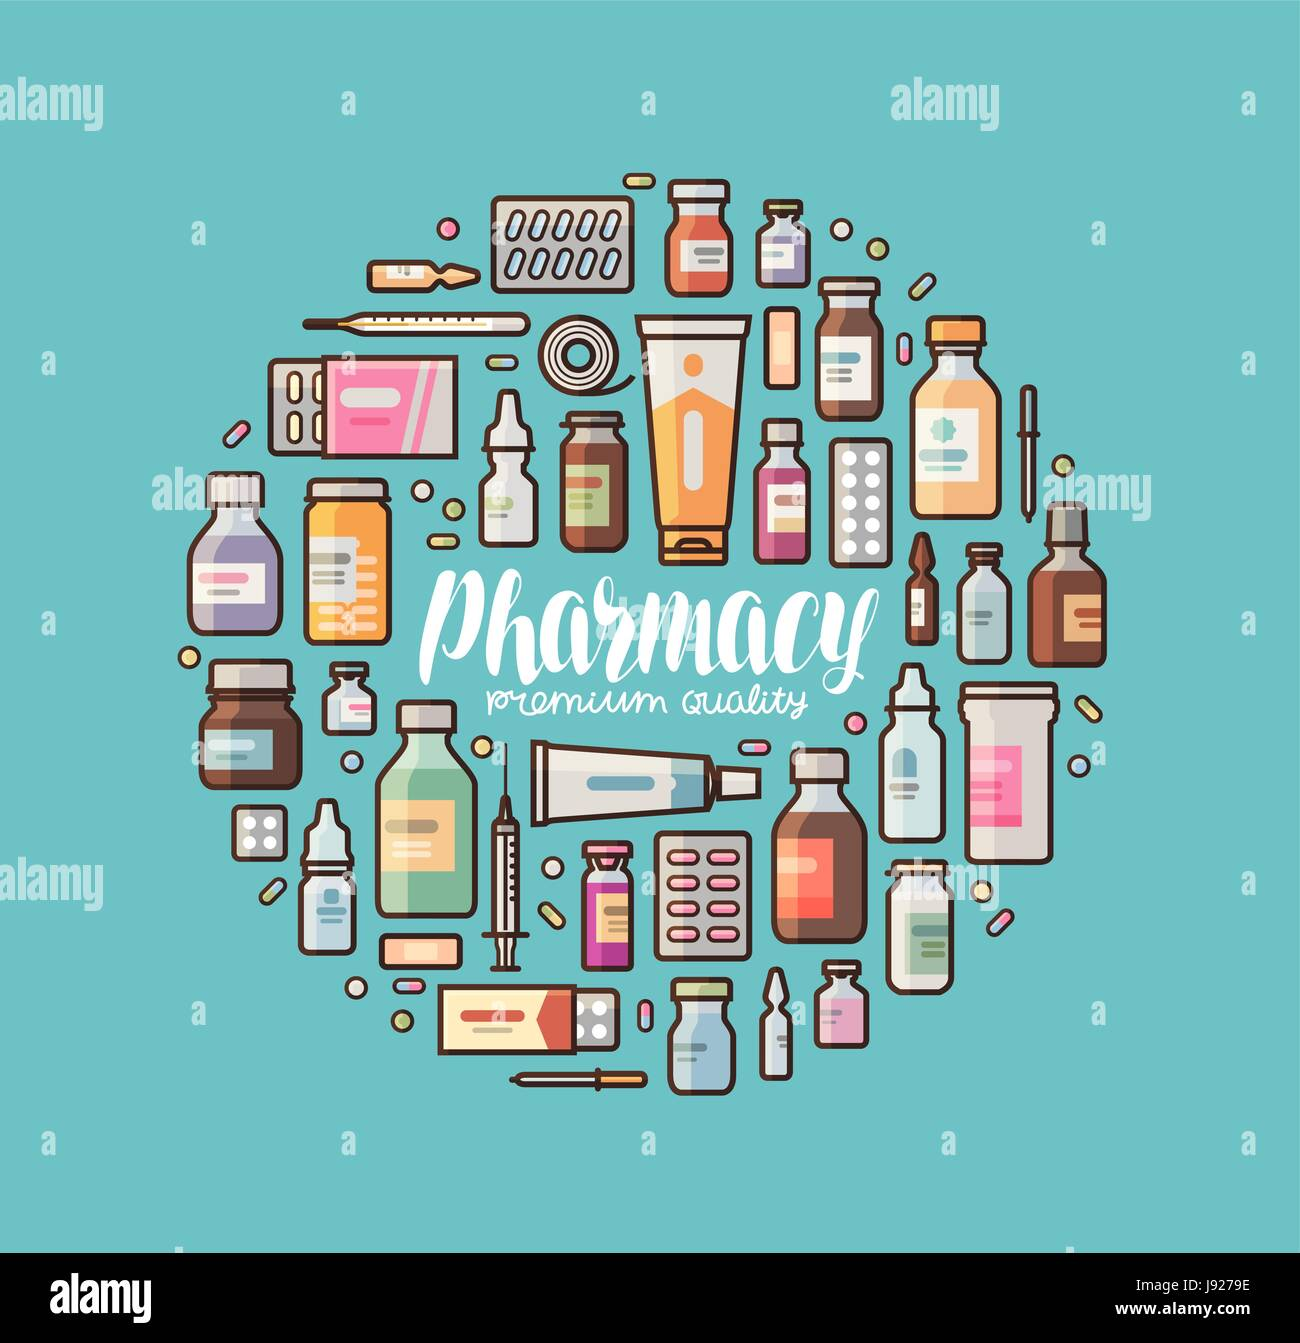 Pharmacy, pharmacology banner  Medical supplies, drugs